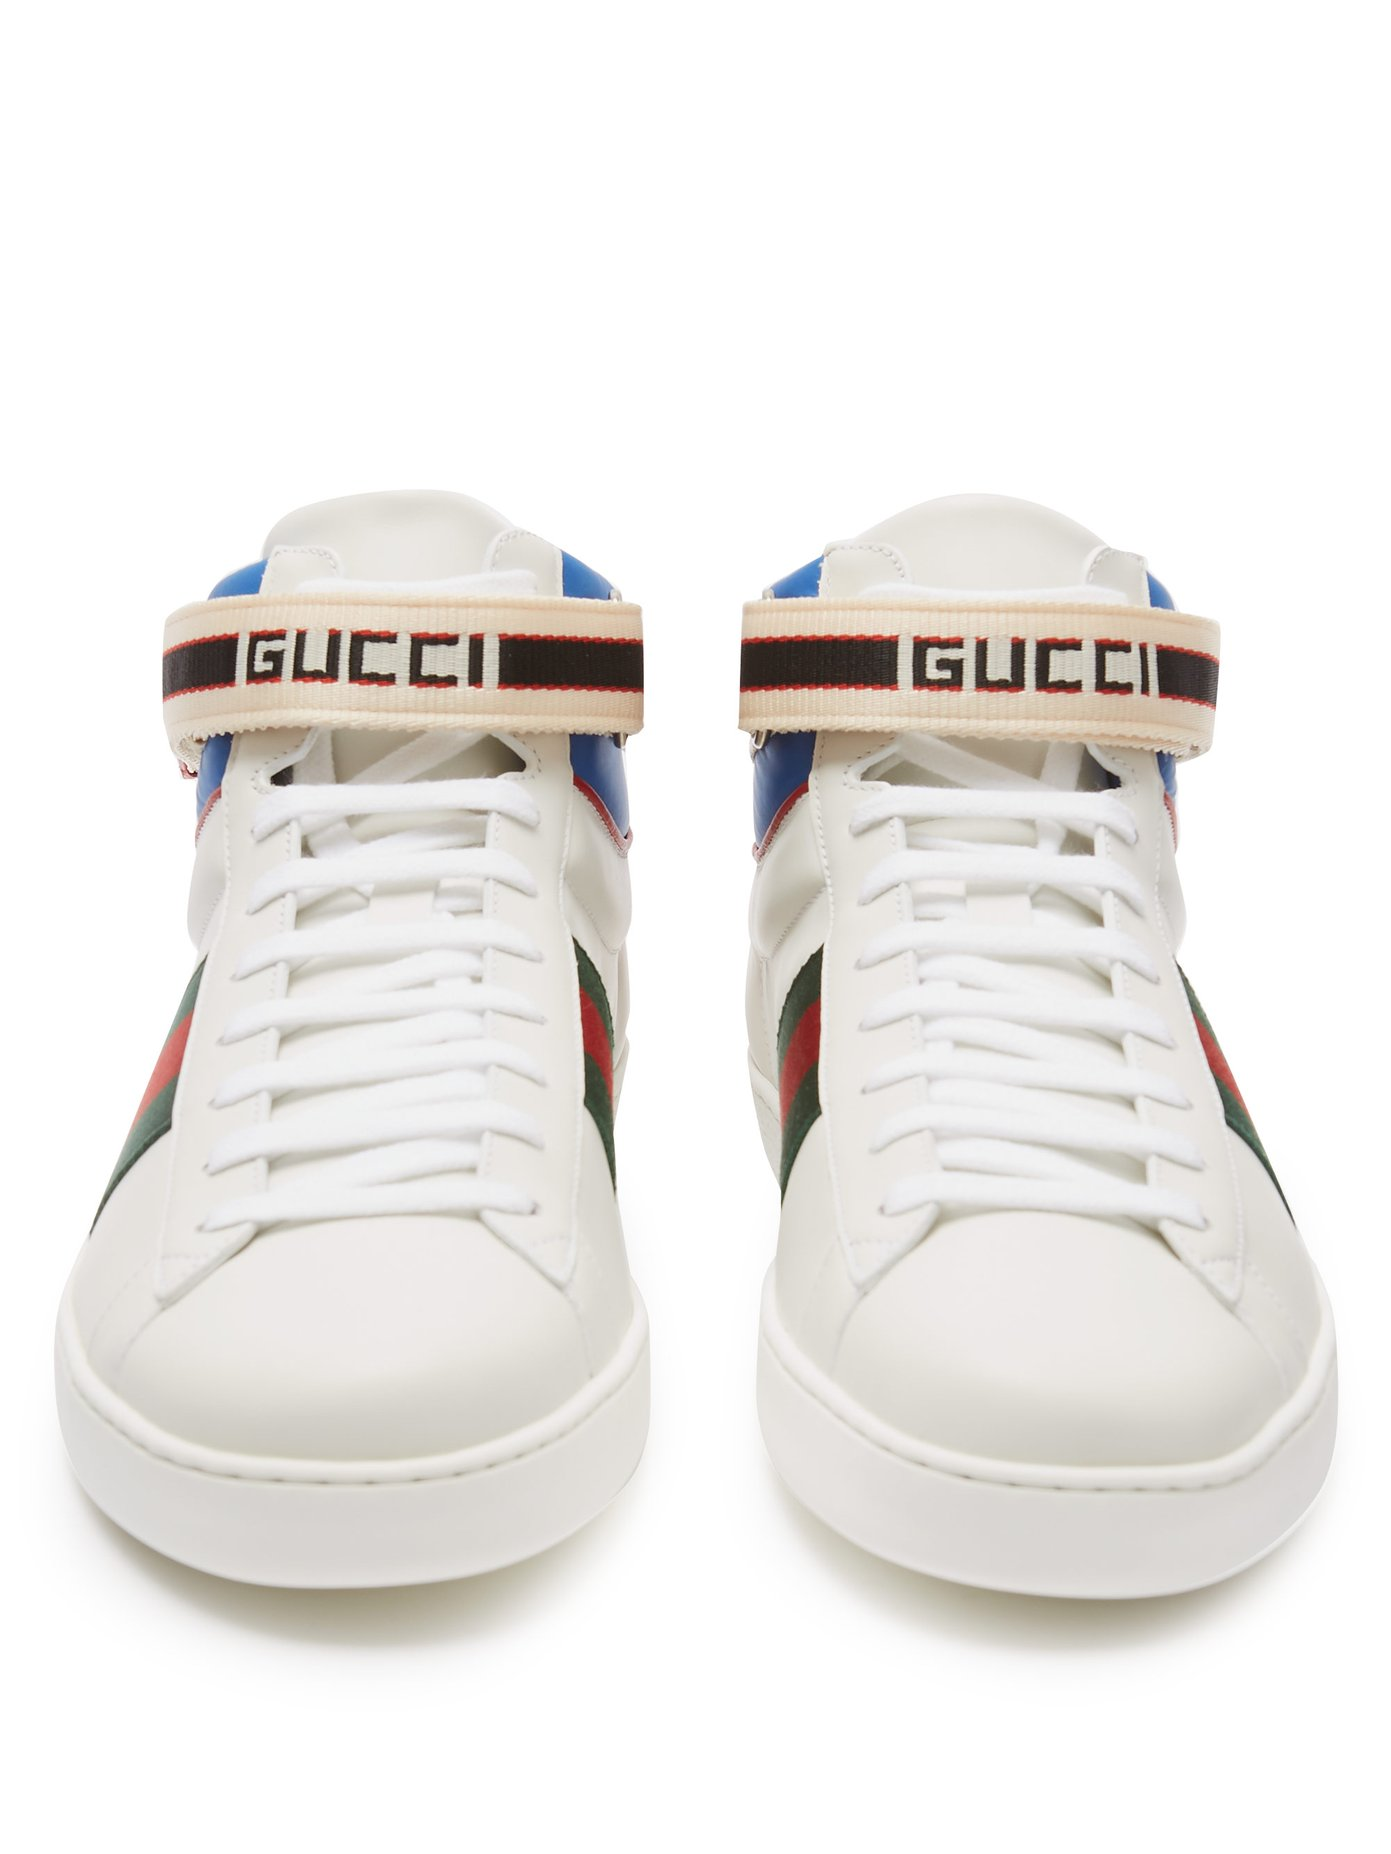 c7823bb283d Gucci New Ace Trainers Unisex Sneakers – Wit/Blauw/Groen/Rood